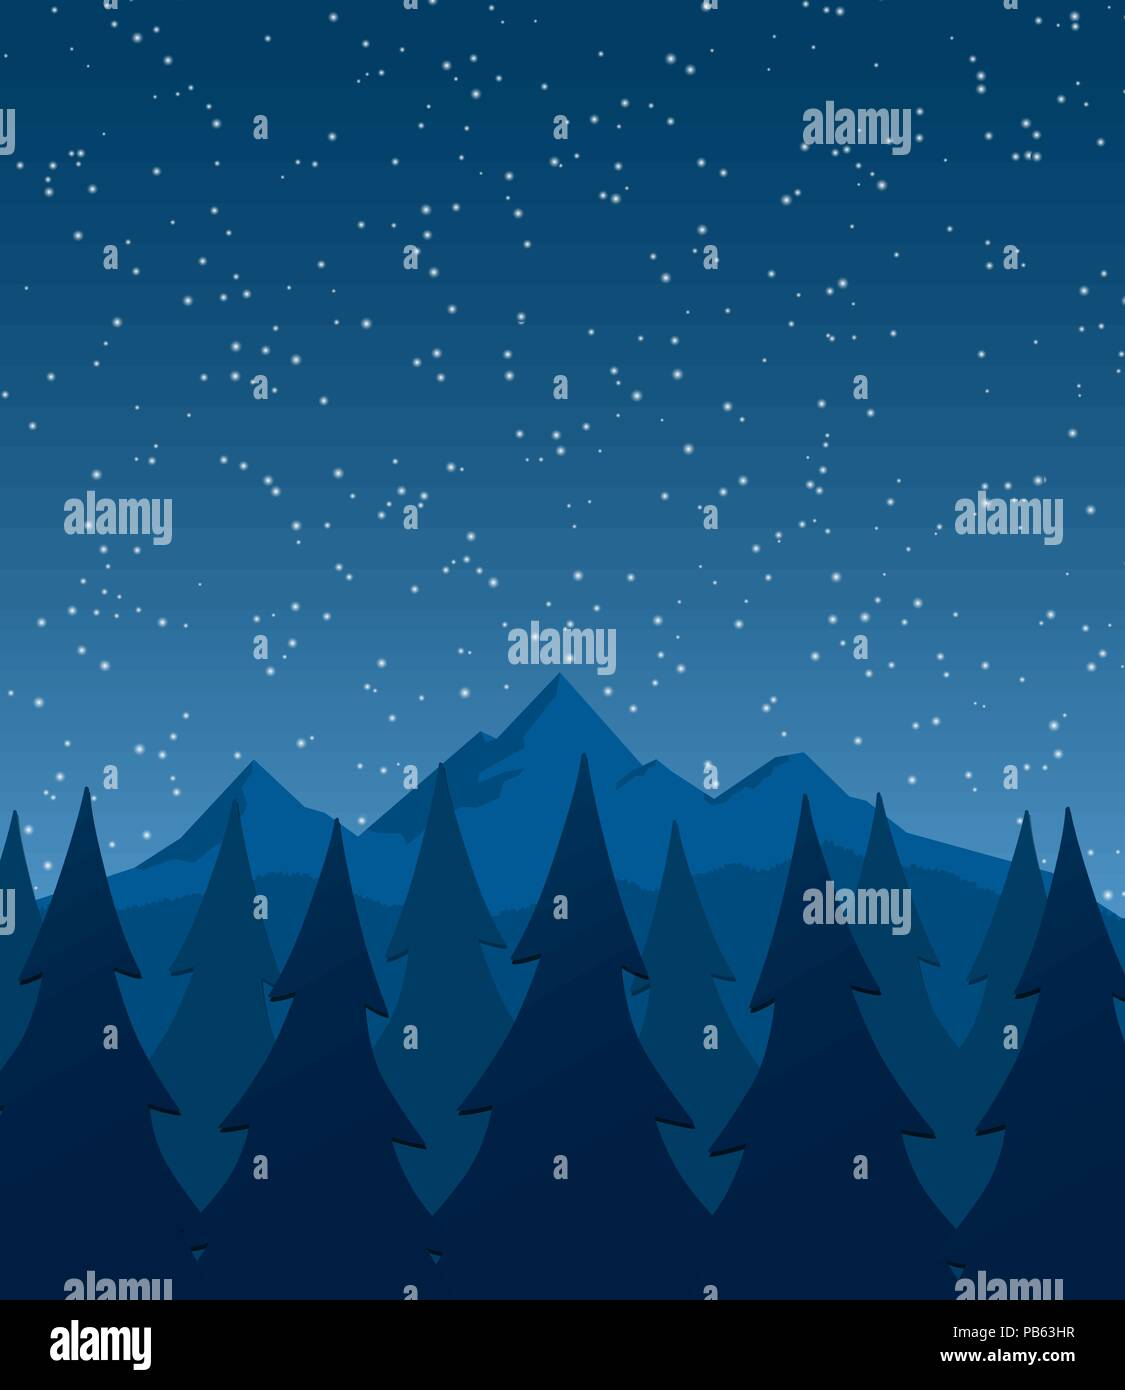 landscape with mountains, trees and starful night sky - Background